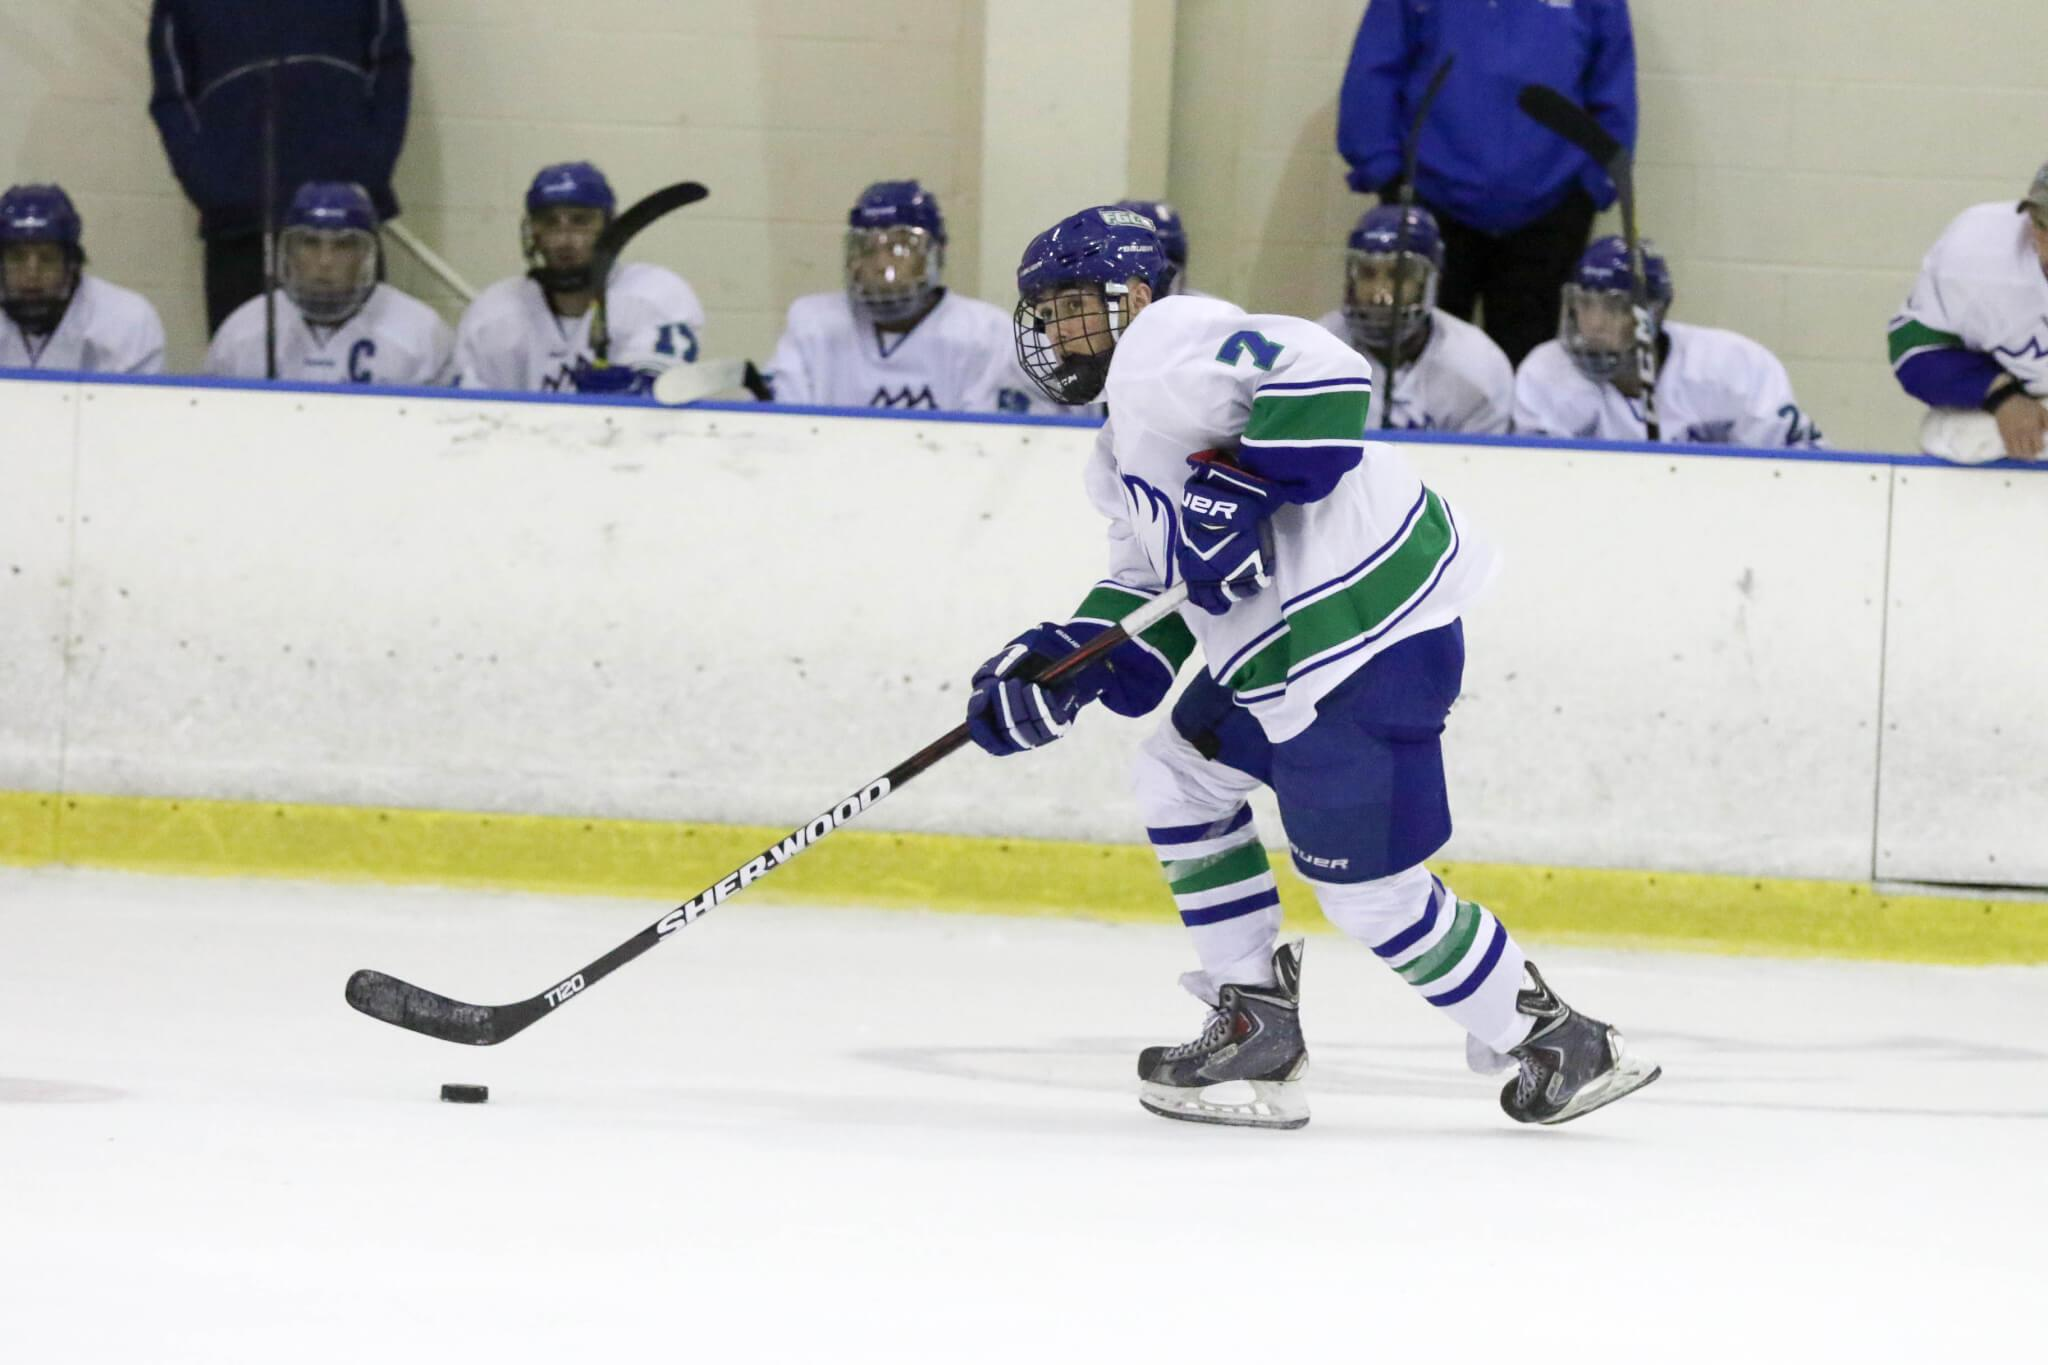 DII Hockey extends undefeated season with 10th and 11th consecutive victories